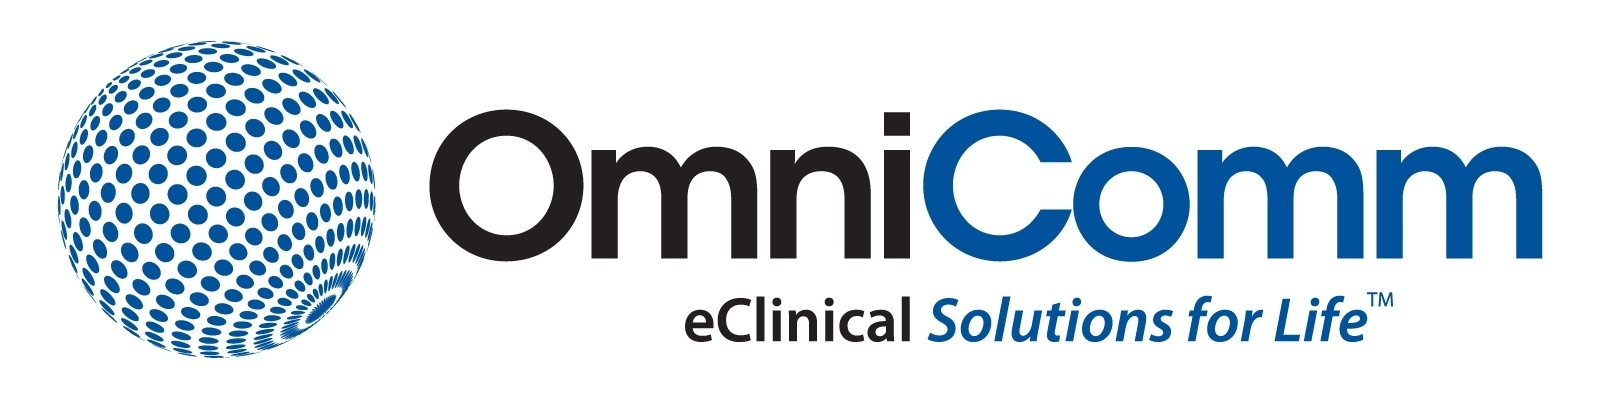 OmniComm New Logo_Aug2010